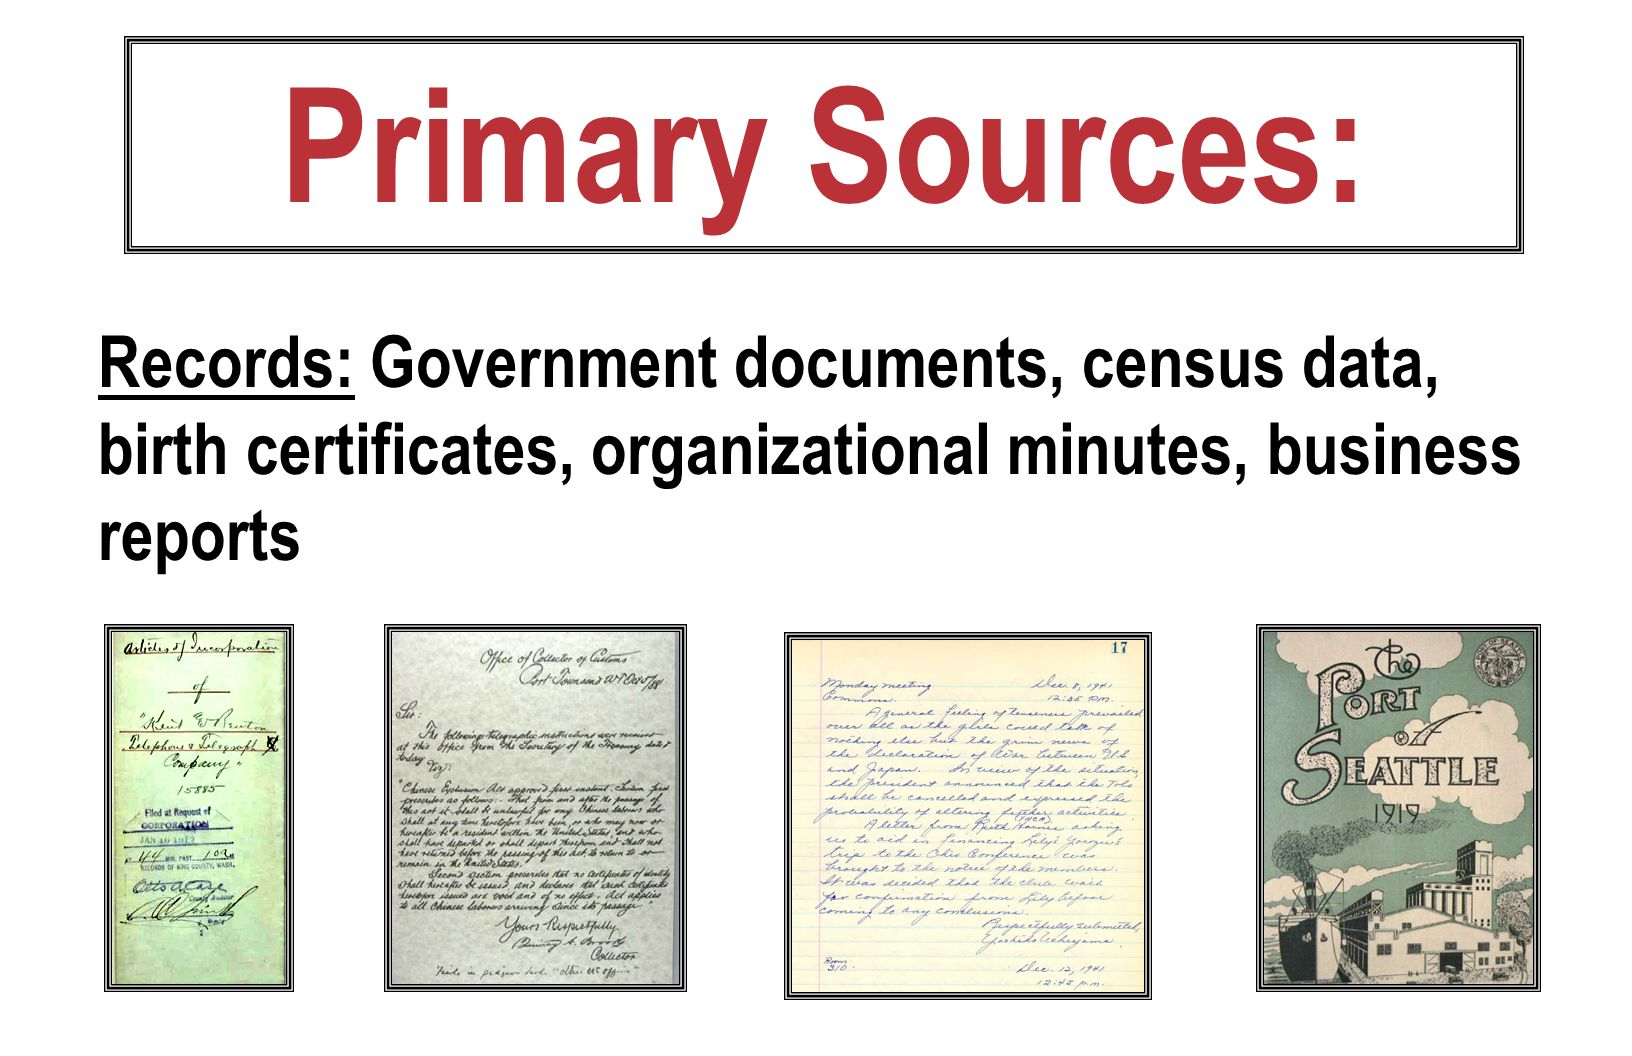 Primary Sources: Records: Government documents, census data, birth certificates, organizational minutes, business reports.